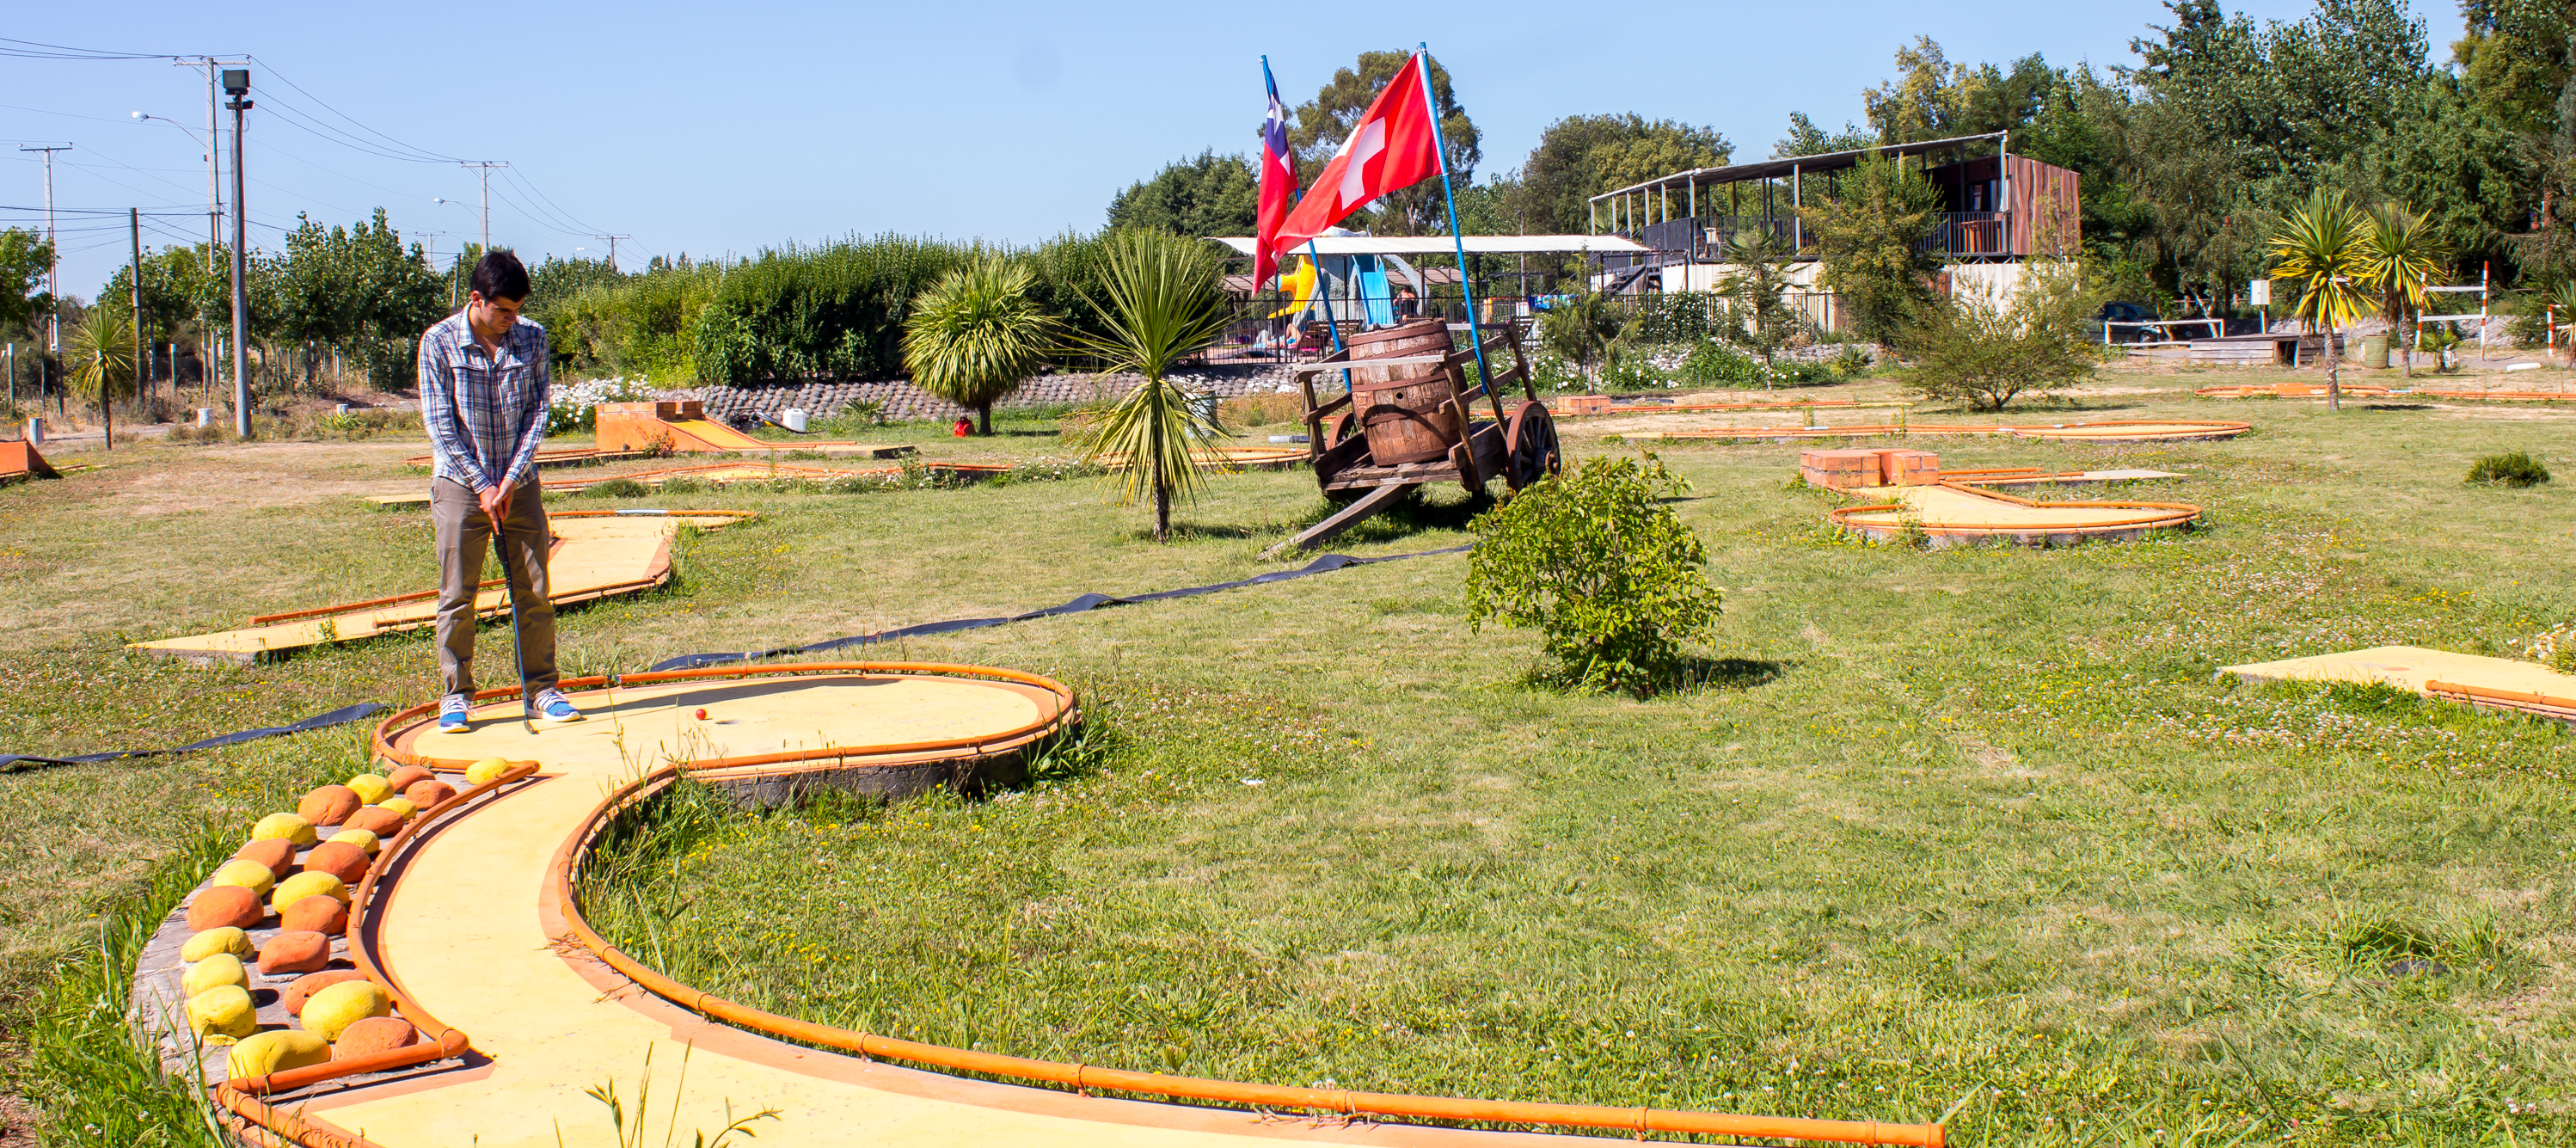 Mini Golf Don Ambrosio